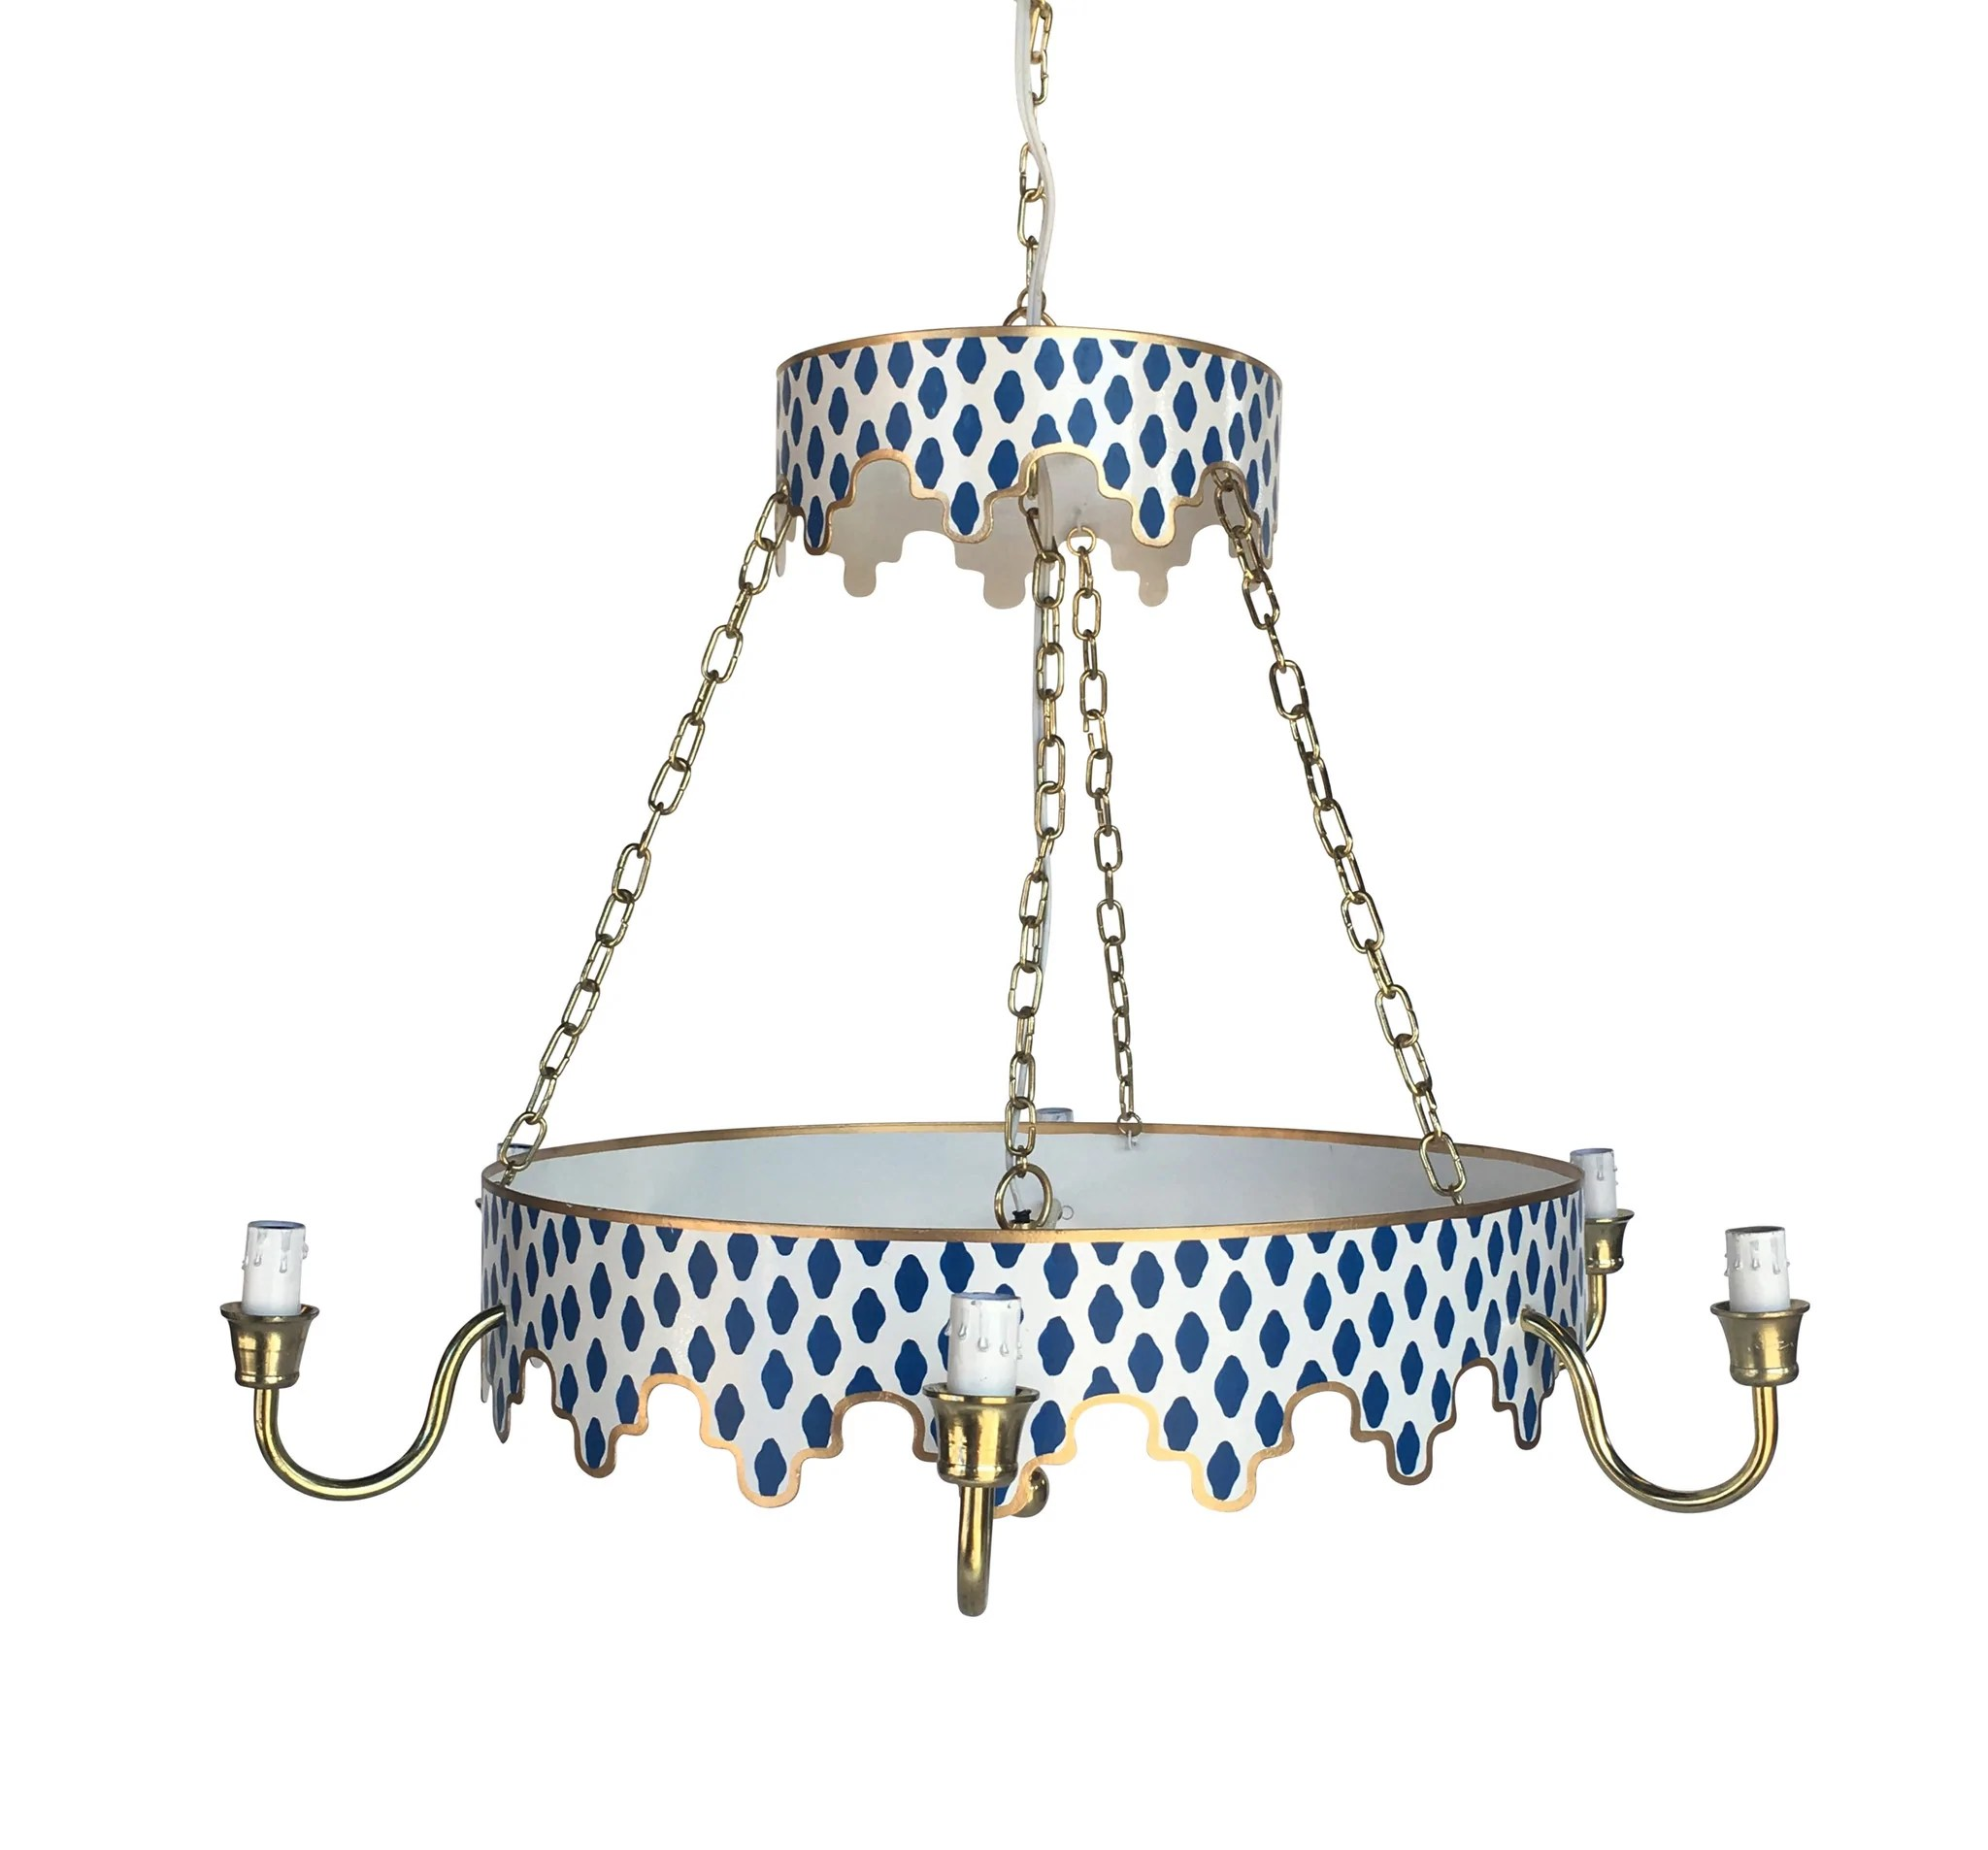 Small Simple Chandelier Parsi In Navy Chandelier